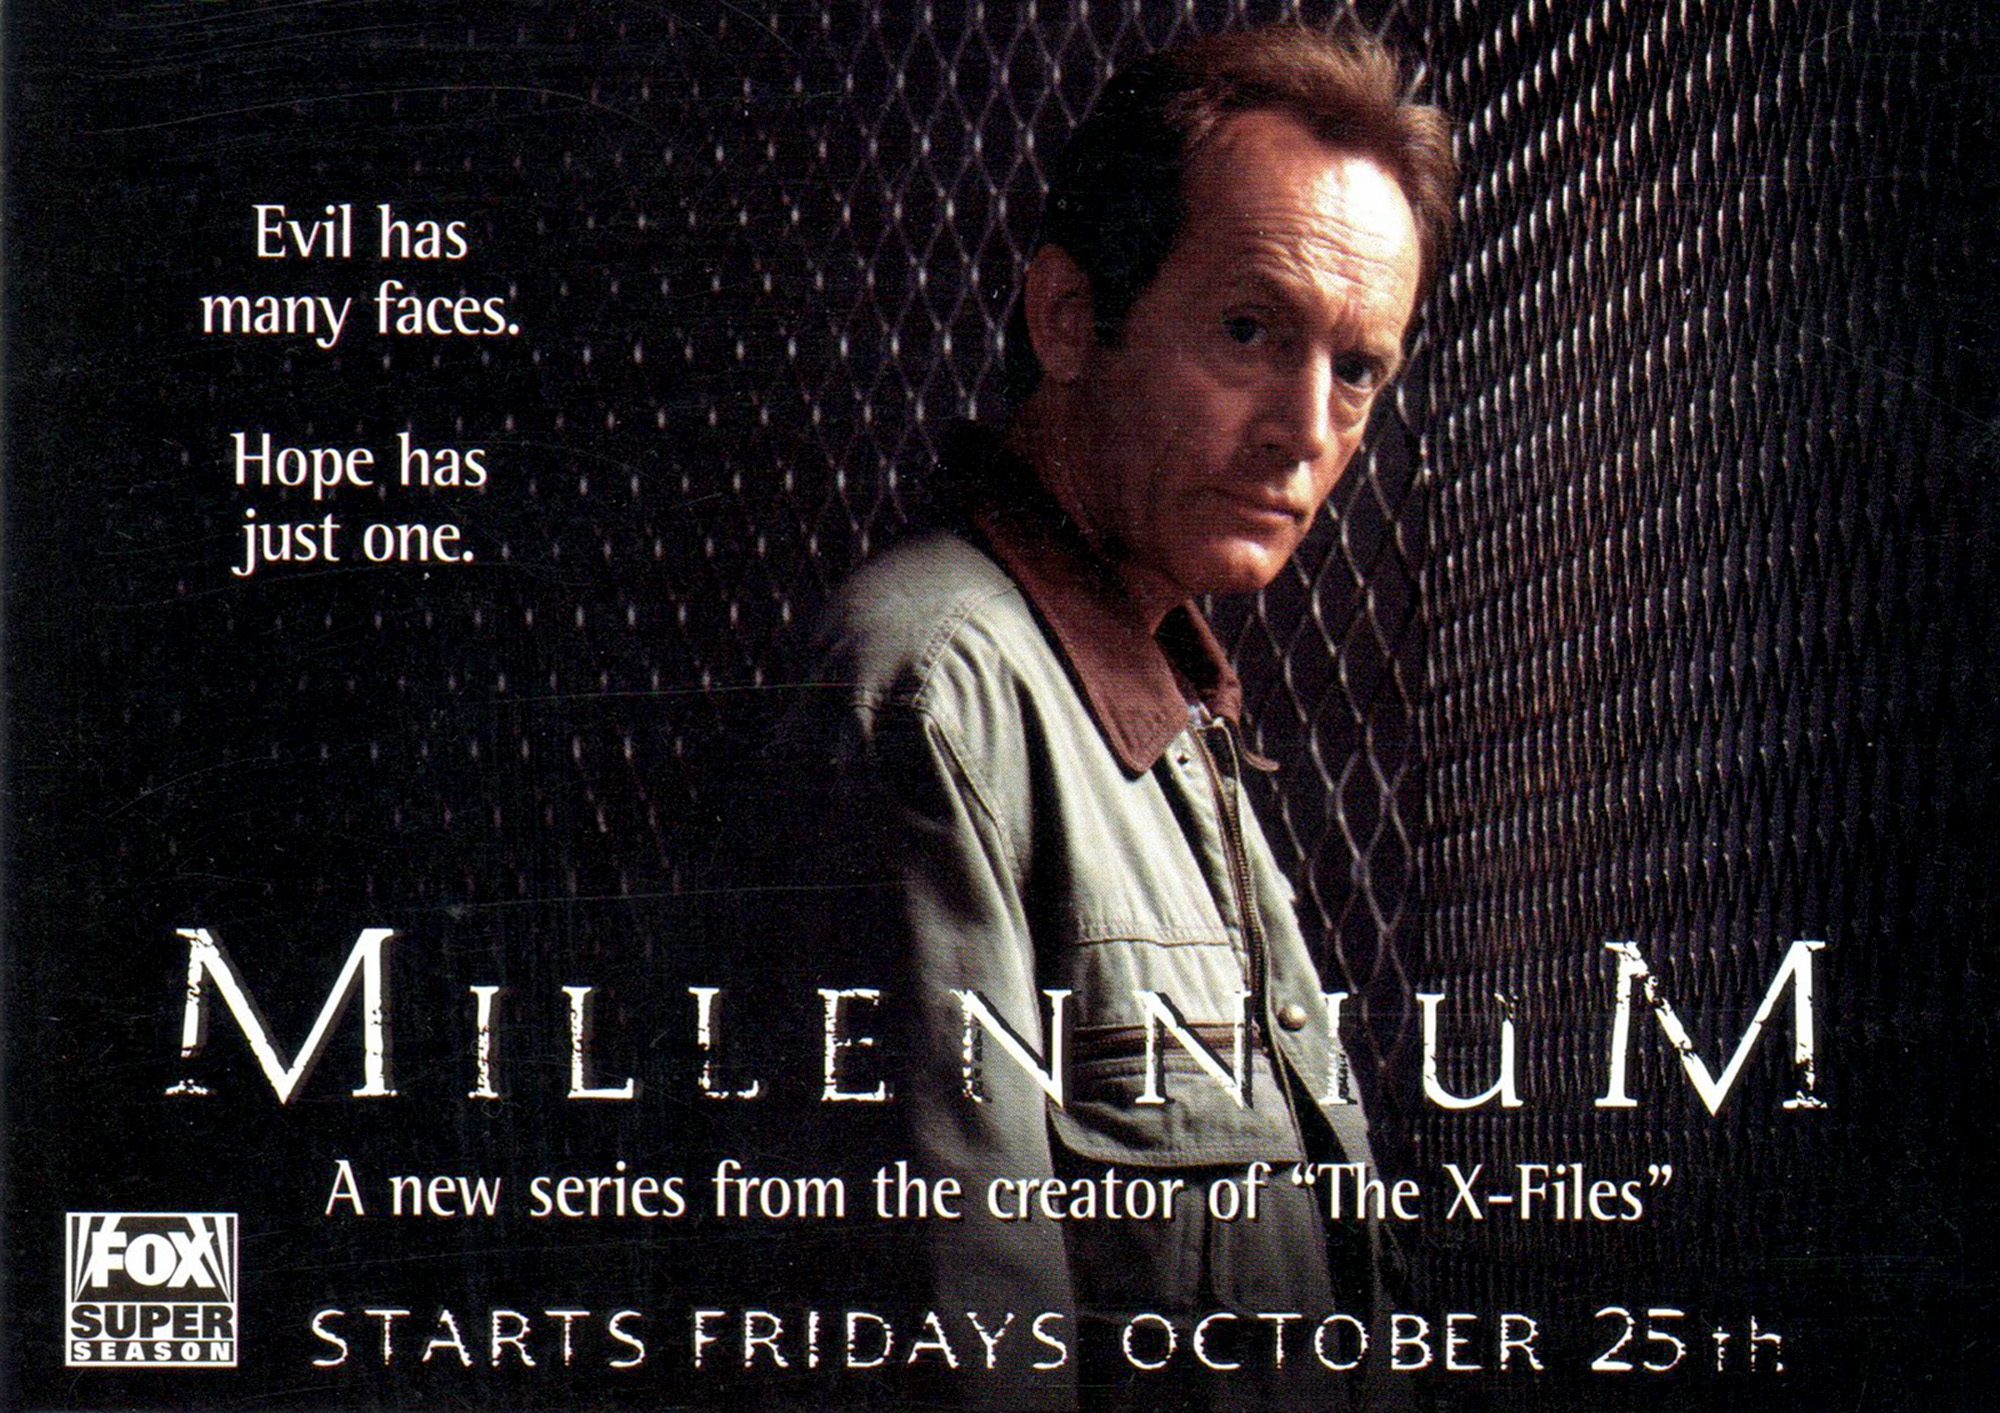 Millennium TV series (1996-1999) starring Lance Henriksen, Megan Gallagher, Terry O'Quinn, Brittany Tiplady, Klea Scott and Bill Smitrovich - From Chris Carter (The X-Files) - dvdbash.com